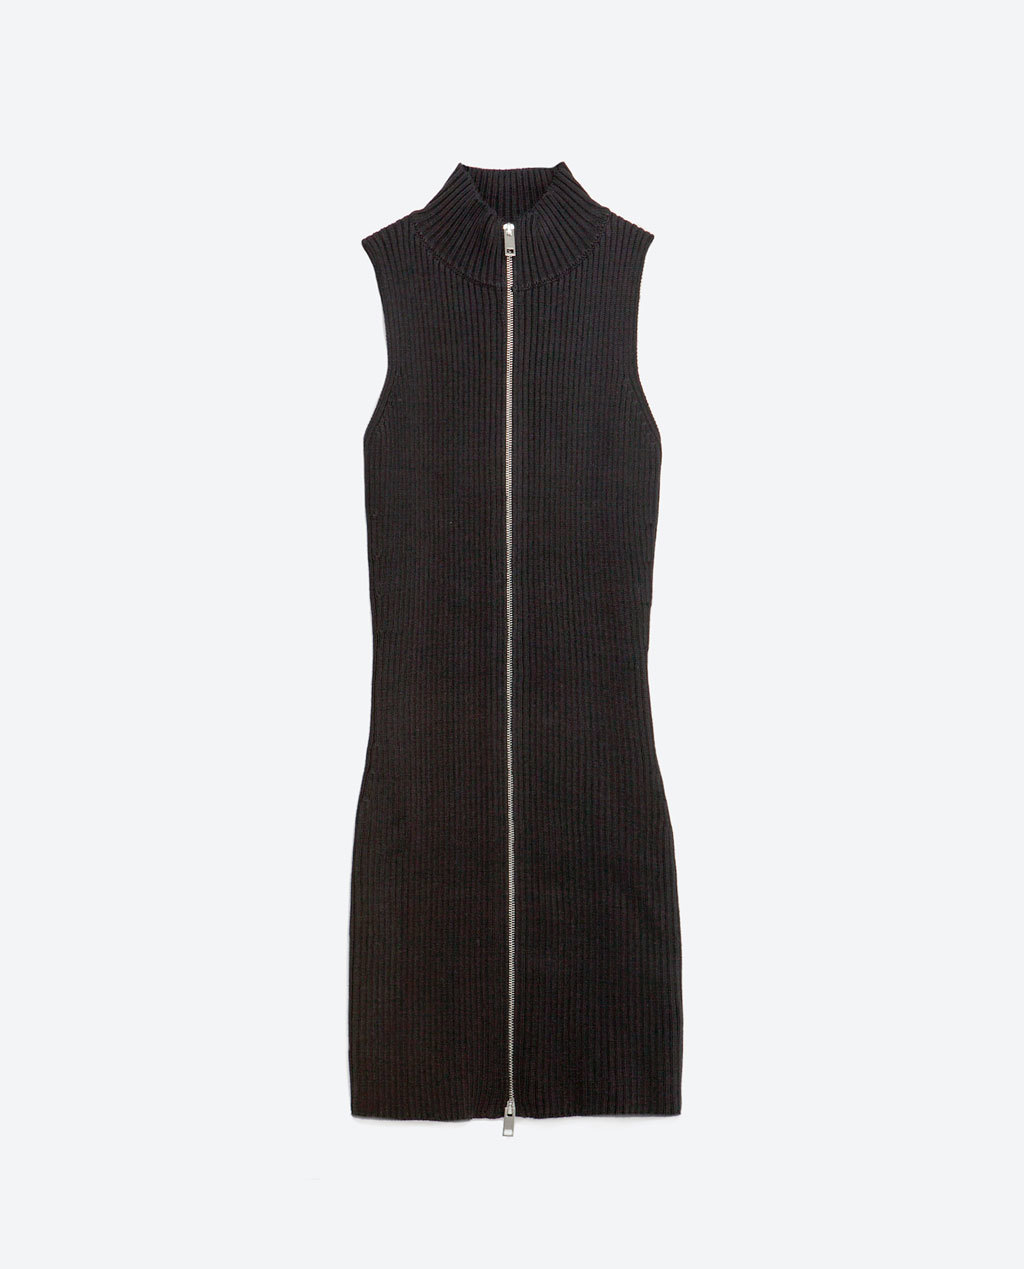 Front Zip Dress - length: mid thigh; fit: tight; pattern: plain; sleeve style: sleeveless; neckline: high neck; style: bodycon; predominant colour: black; occasions: evening; fibres: cotton - stretch; sleeve length: sleeveless; texture group: jersey - clingy; pattern type: fabric; season: s/s 2016; wardrobe: event